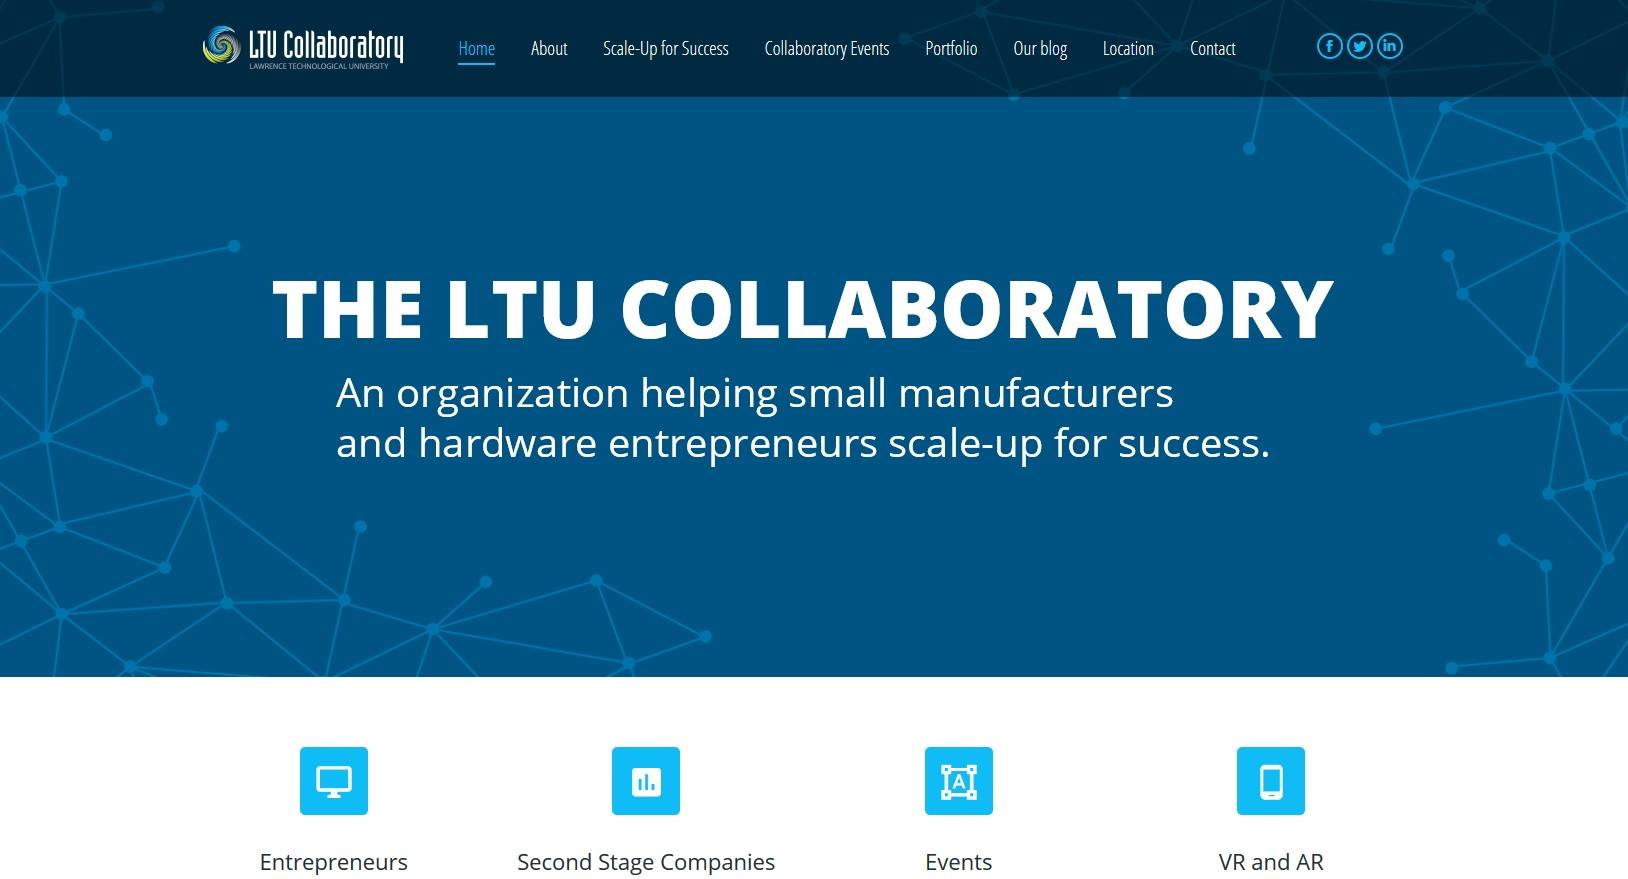 The LTU Collaboratory